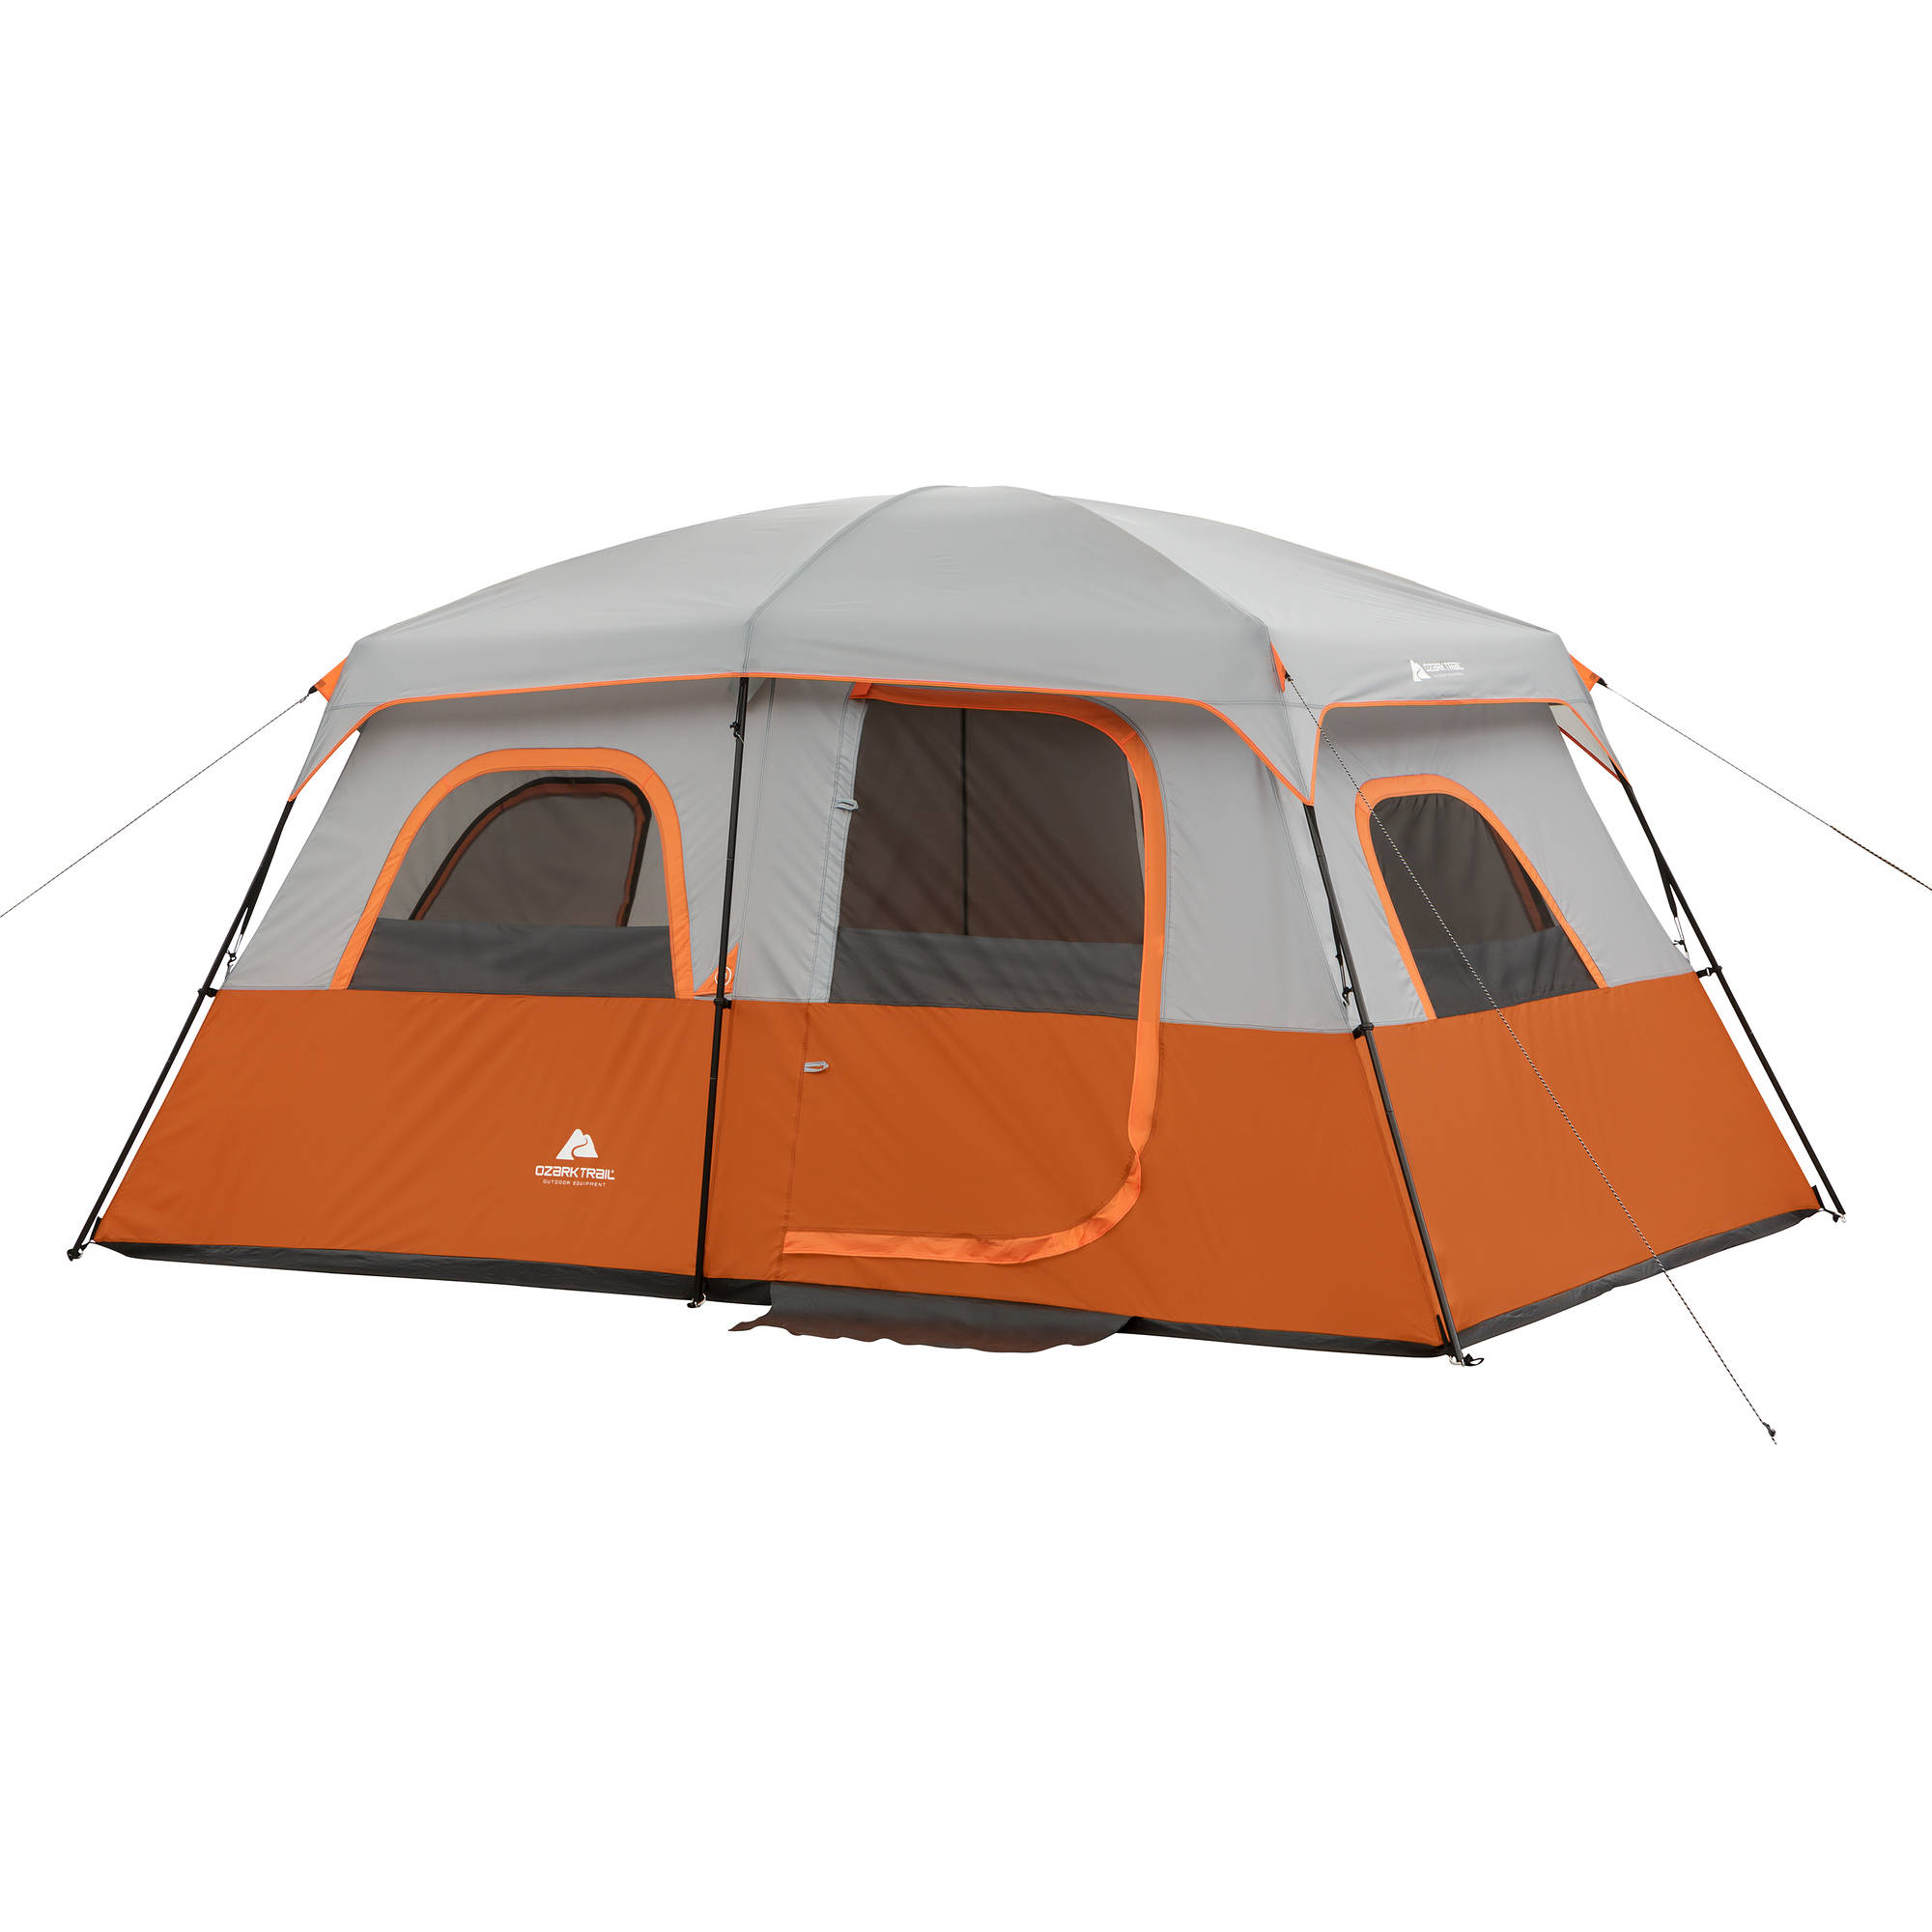 """Ozark Trail 13' x 9' with 76""""H Family Cabin Tent, Sleeps 8"""